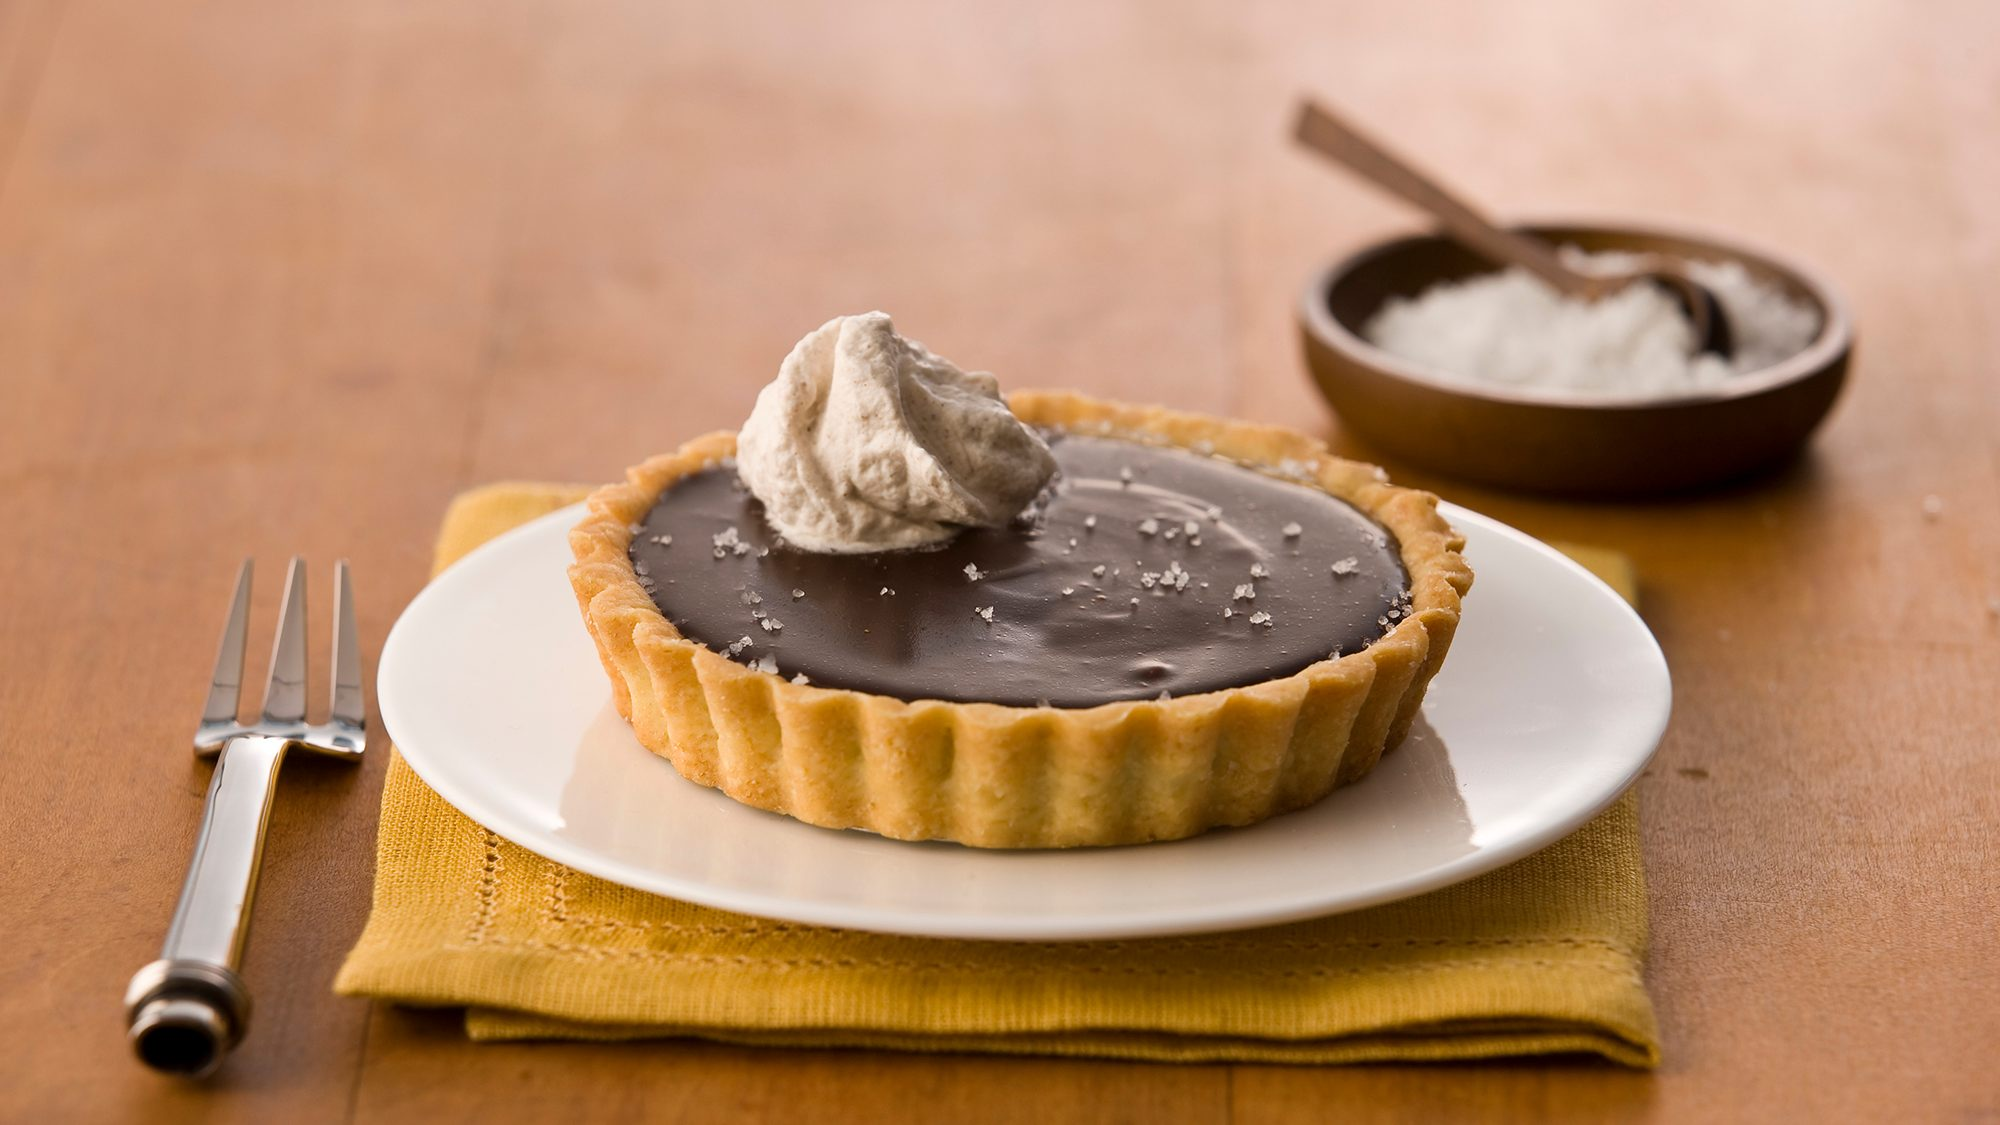 chocolate-tart-with-salted-caramel-and-spiced-chantilly-cream.jpg